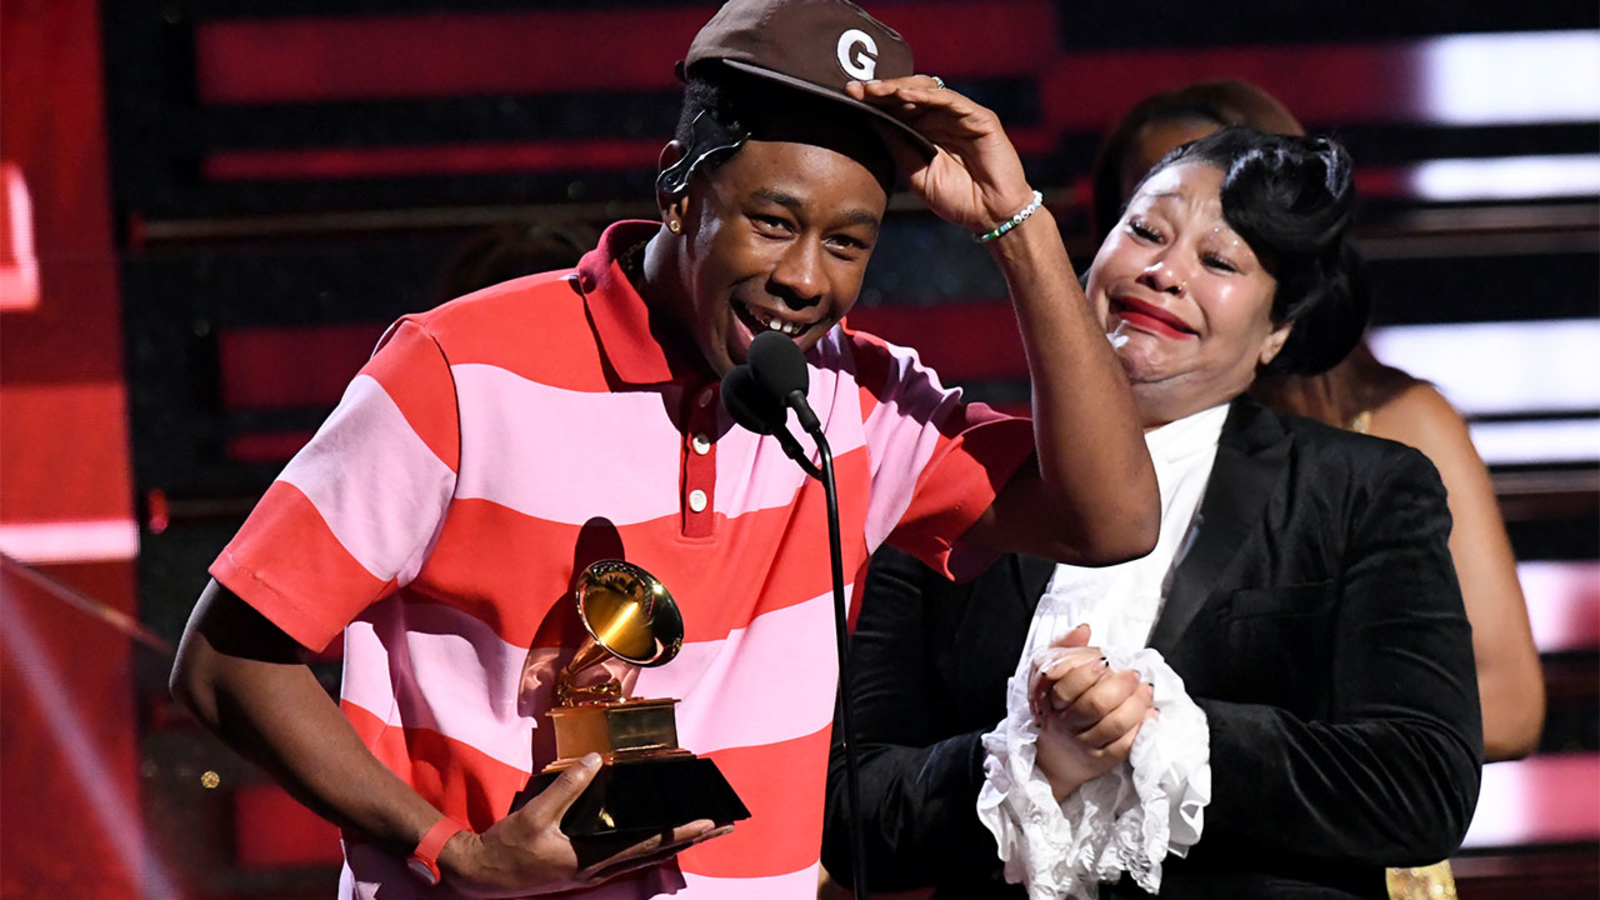 grammys 2020 tyler the creator brings mom onstage for acceptance speech abc30 fresno grammys 2020 tyler the creator brings mom onstage for acceptance speech abc30 fresno